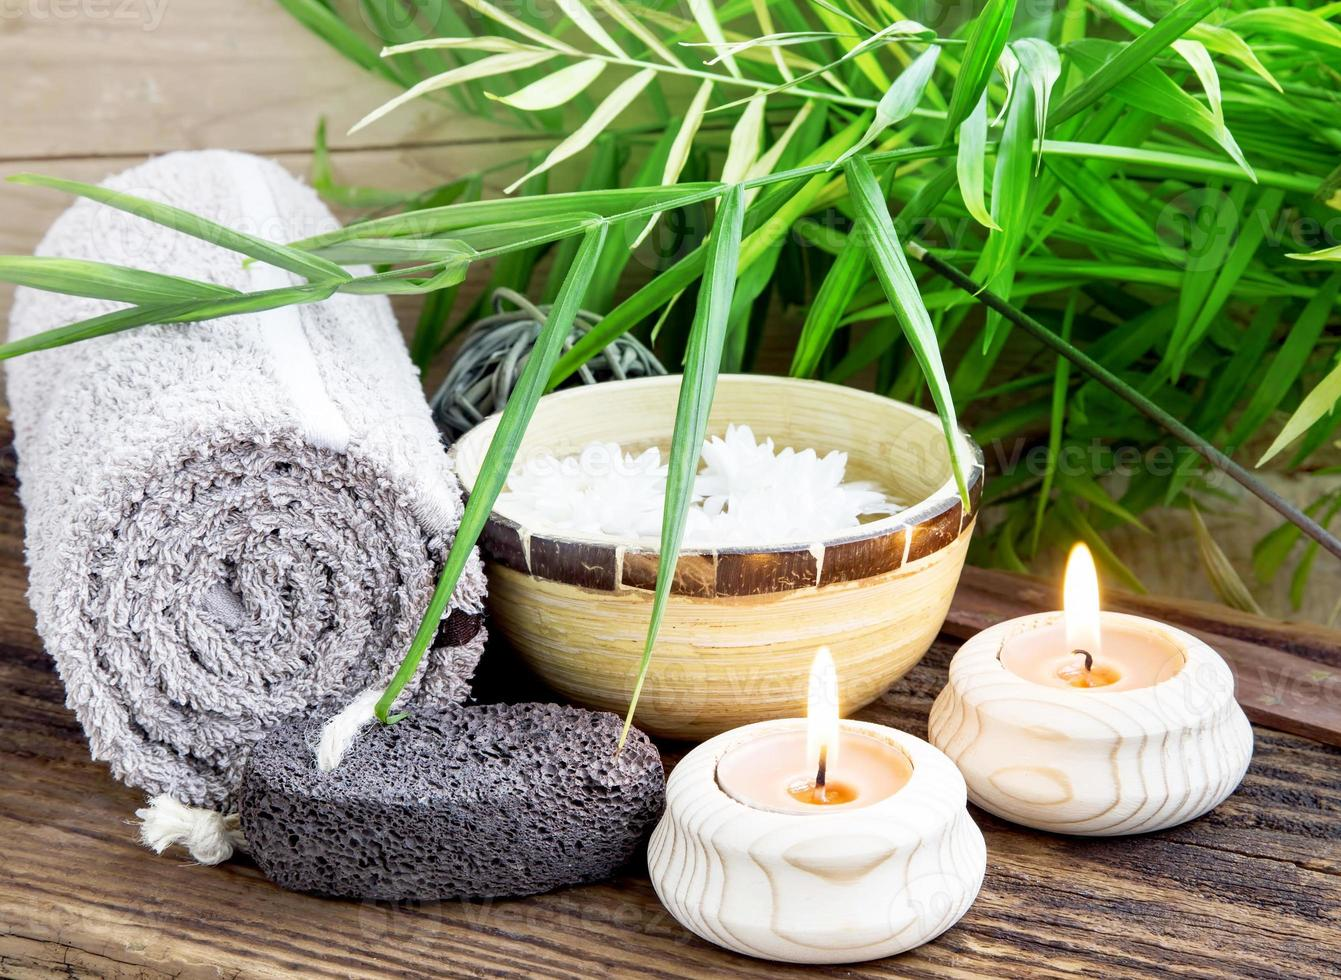 Spa Setting wiht Green Leaves and Burning Candles photo